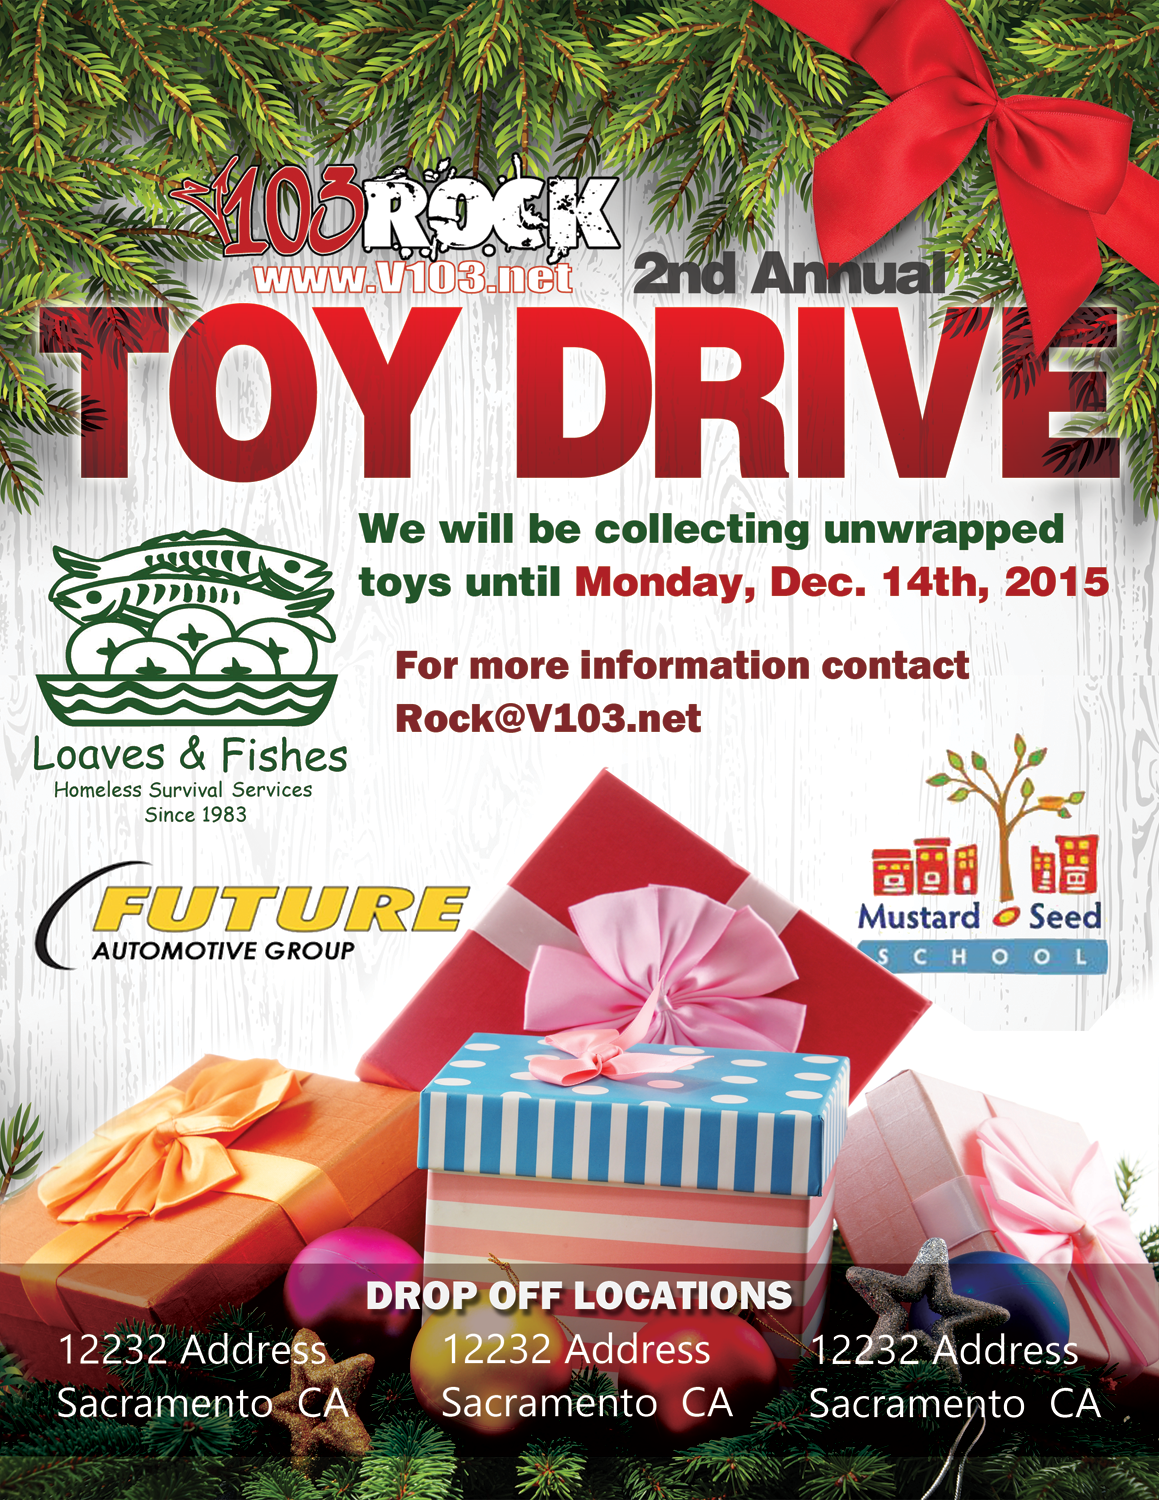 Toy Drive Flyer : V toy drive flyer by fireproofgfx on deviantart